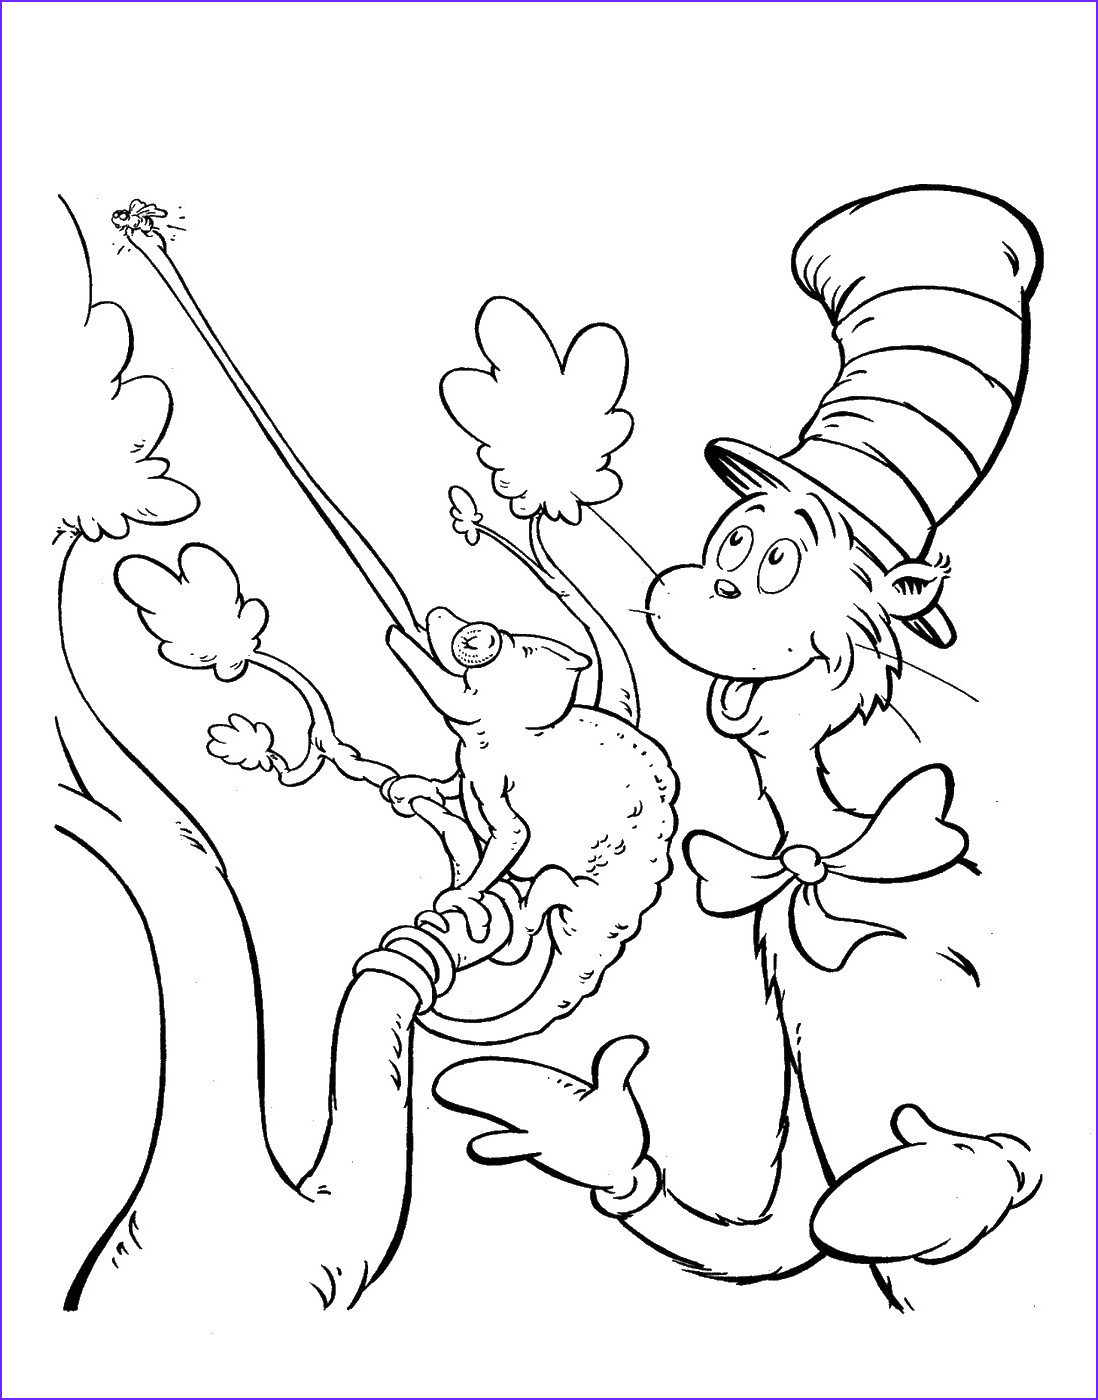 Cat In the Hat Coloring Page Free New Photos Cat In the Hat Coloring Pages